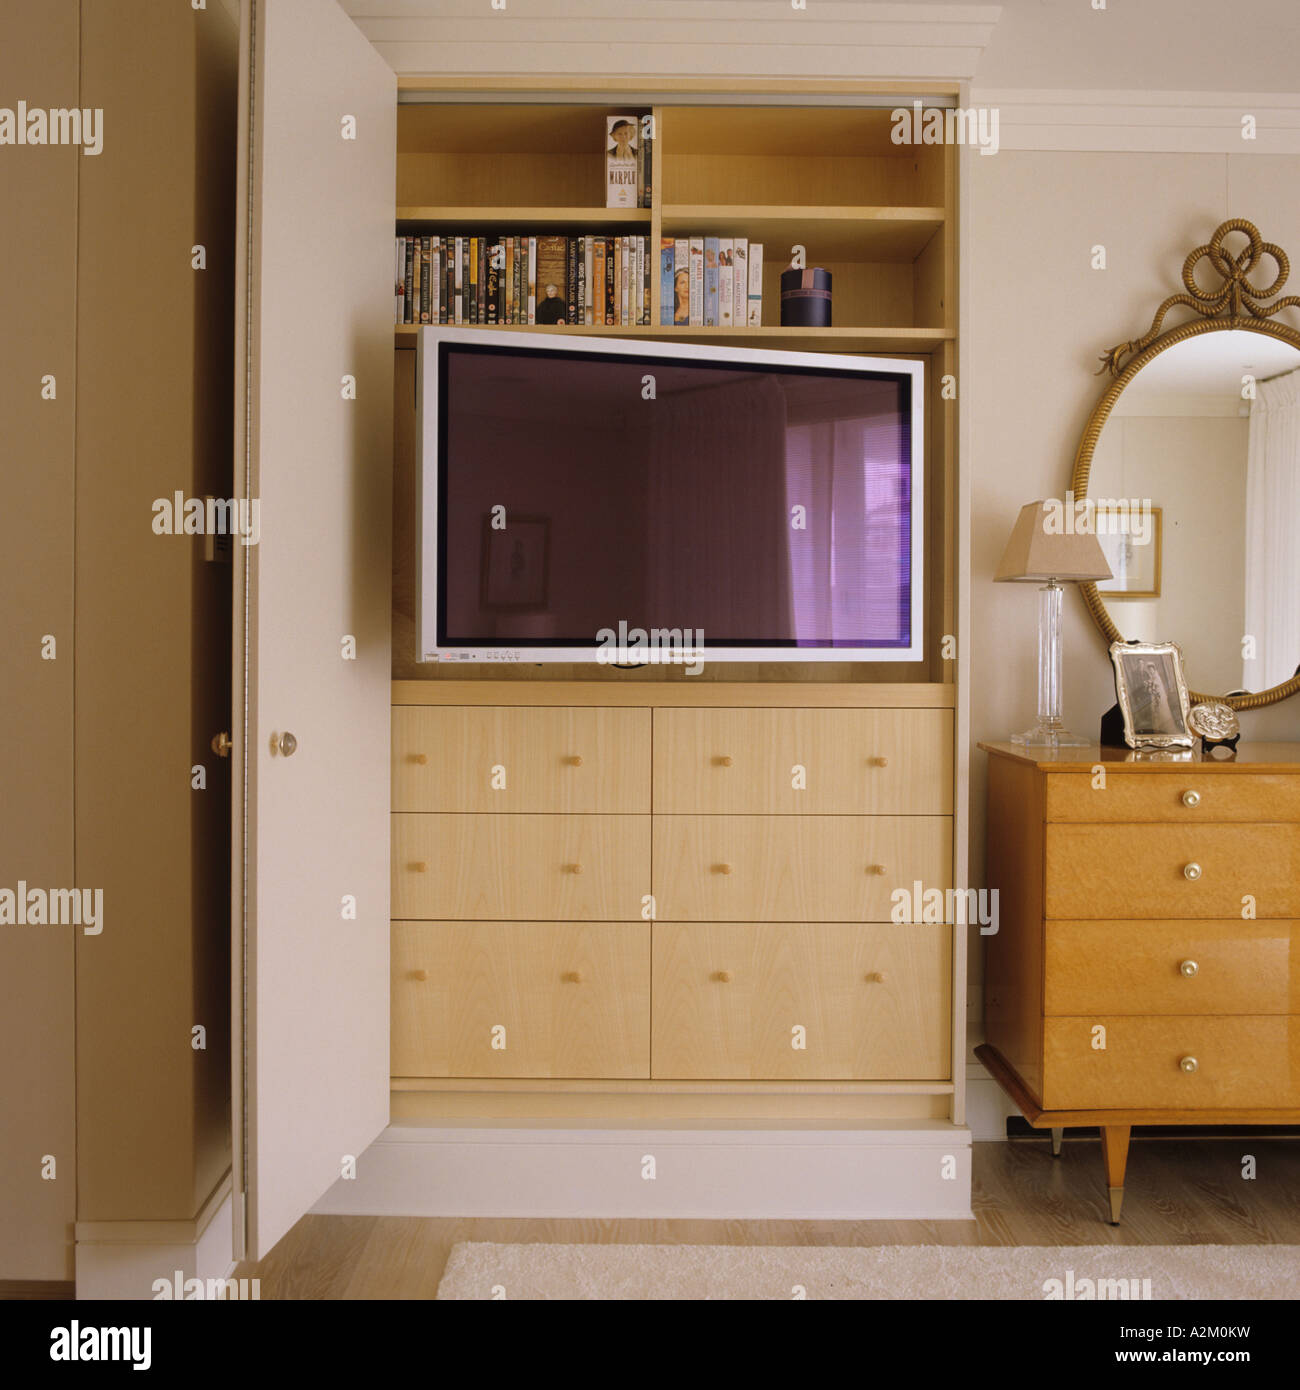 Bedroom dressing table and cupboard - Flat Screen Tv In Cupboard In London Flat With Interior Design By Emily Todhunter Stock